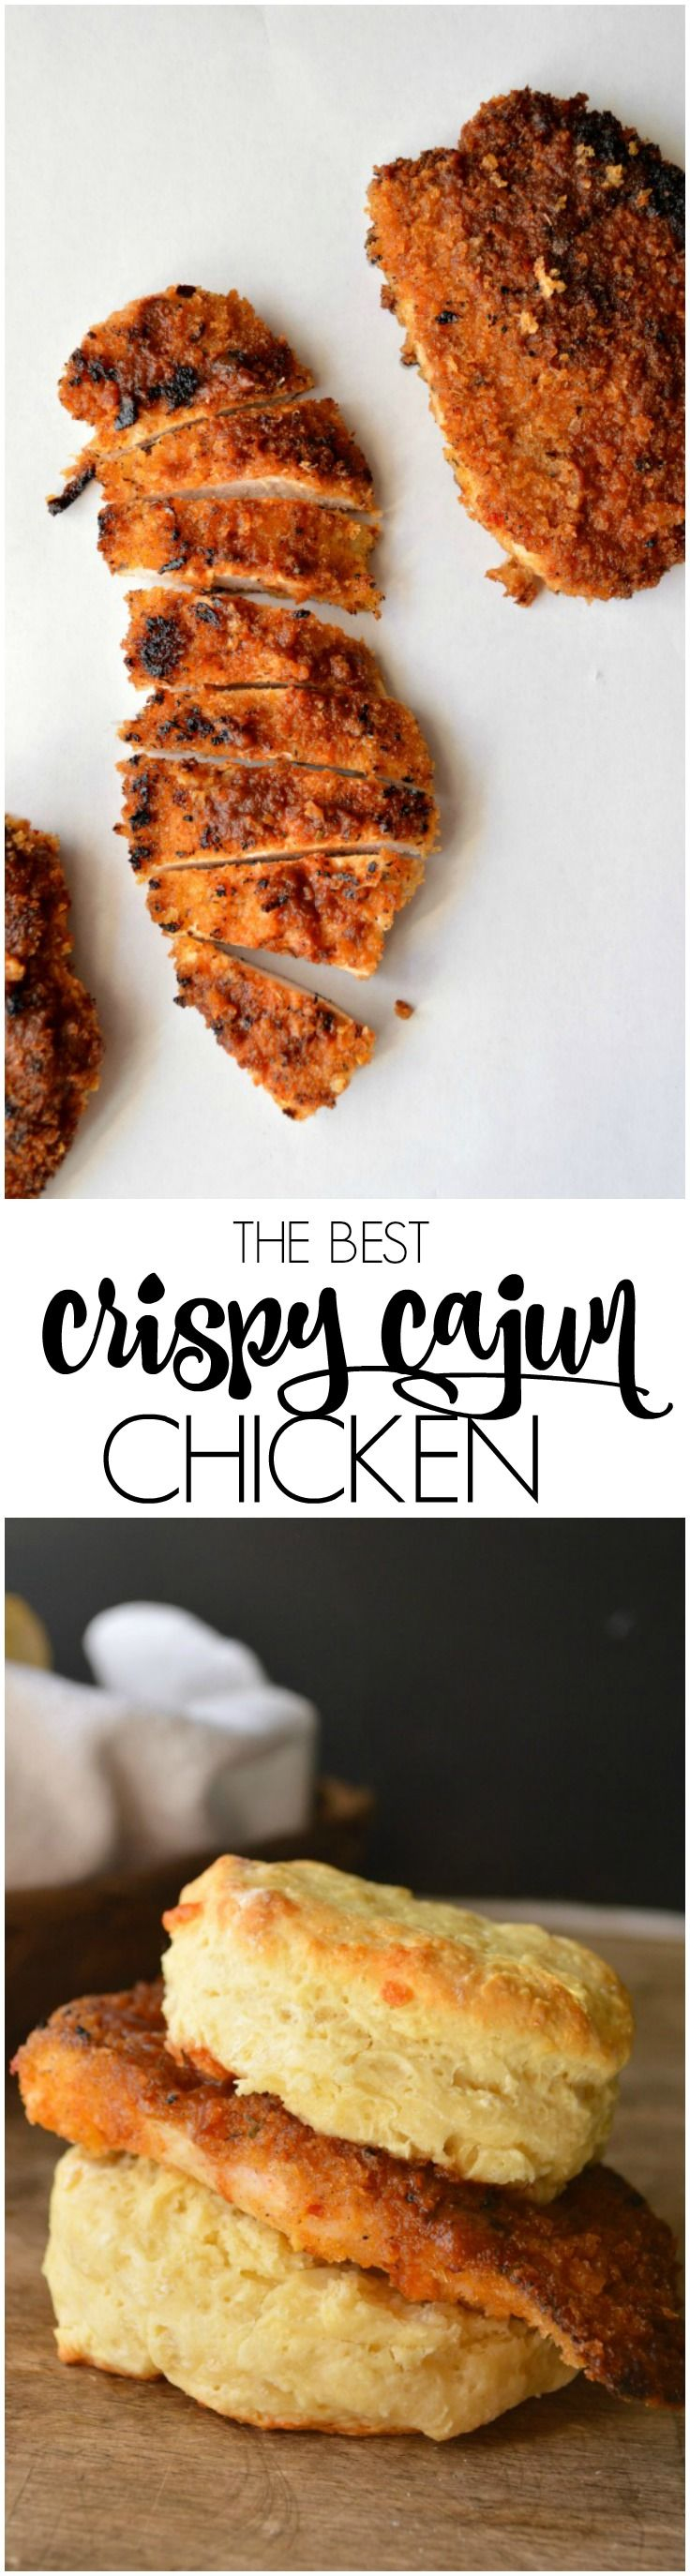 Whether you want to make a CopyCat Cajun Filet Biscuit or just have a really great salad, this easy recipe for The Best Crispy Cajun Chicken will not disappoint!